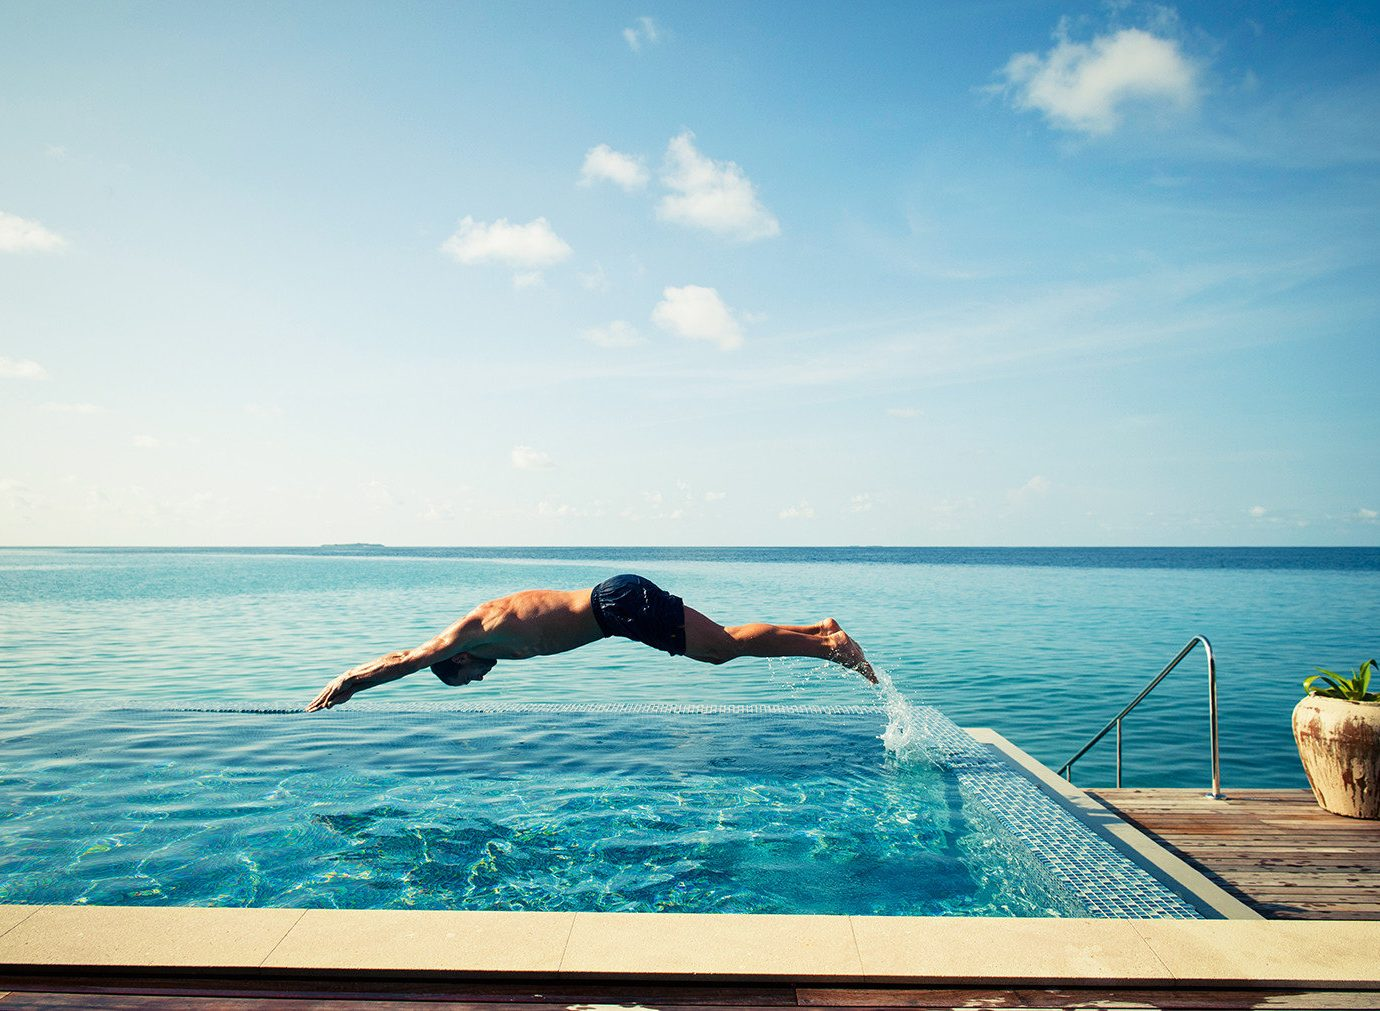 Luxury Travel Trip Ideas water sky outdoor leisure Sea swimming pool water sport Ocean vacation physical fitness sunlight swimming shore